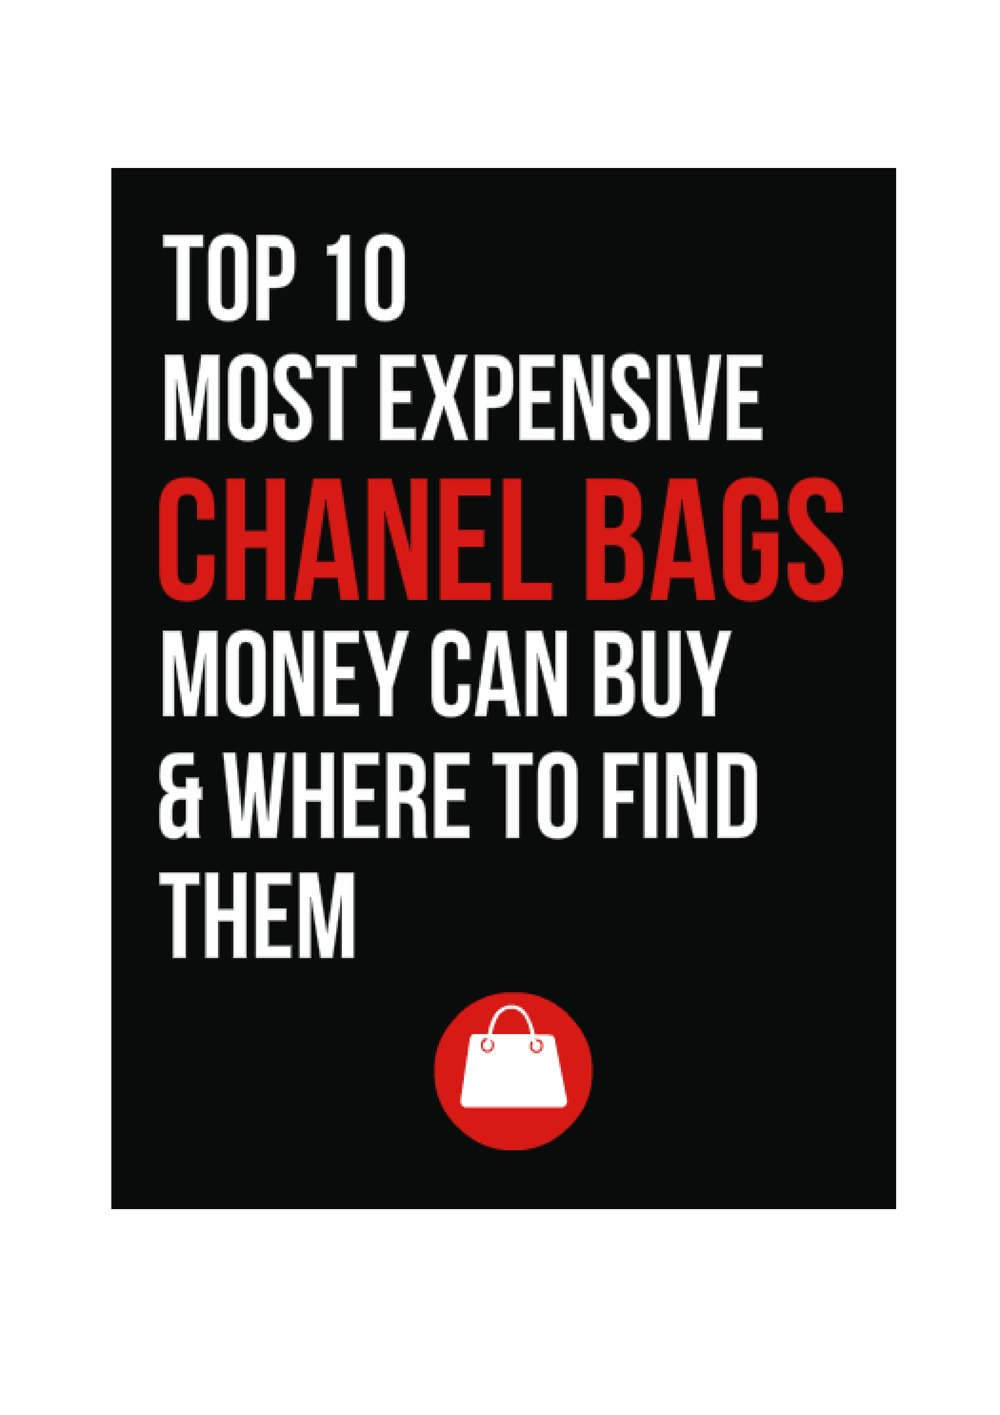 Top 10 Most Expensive Chanel Bags1.jpg